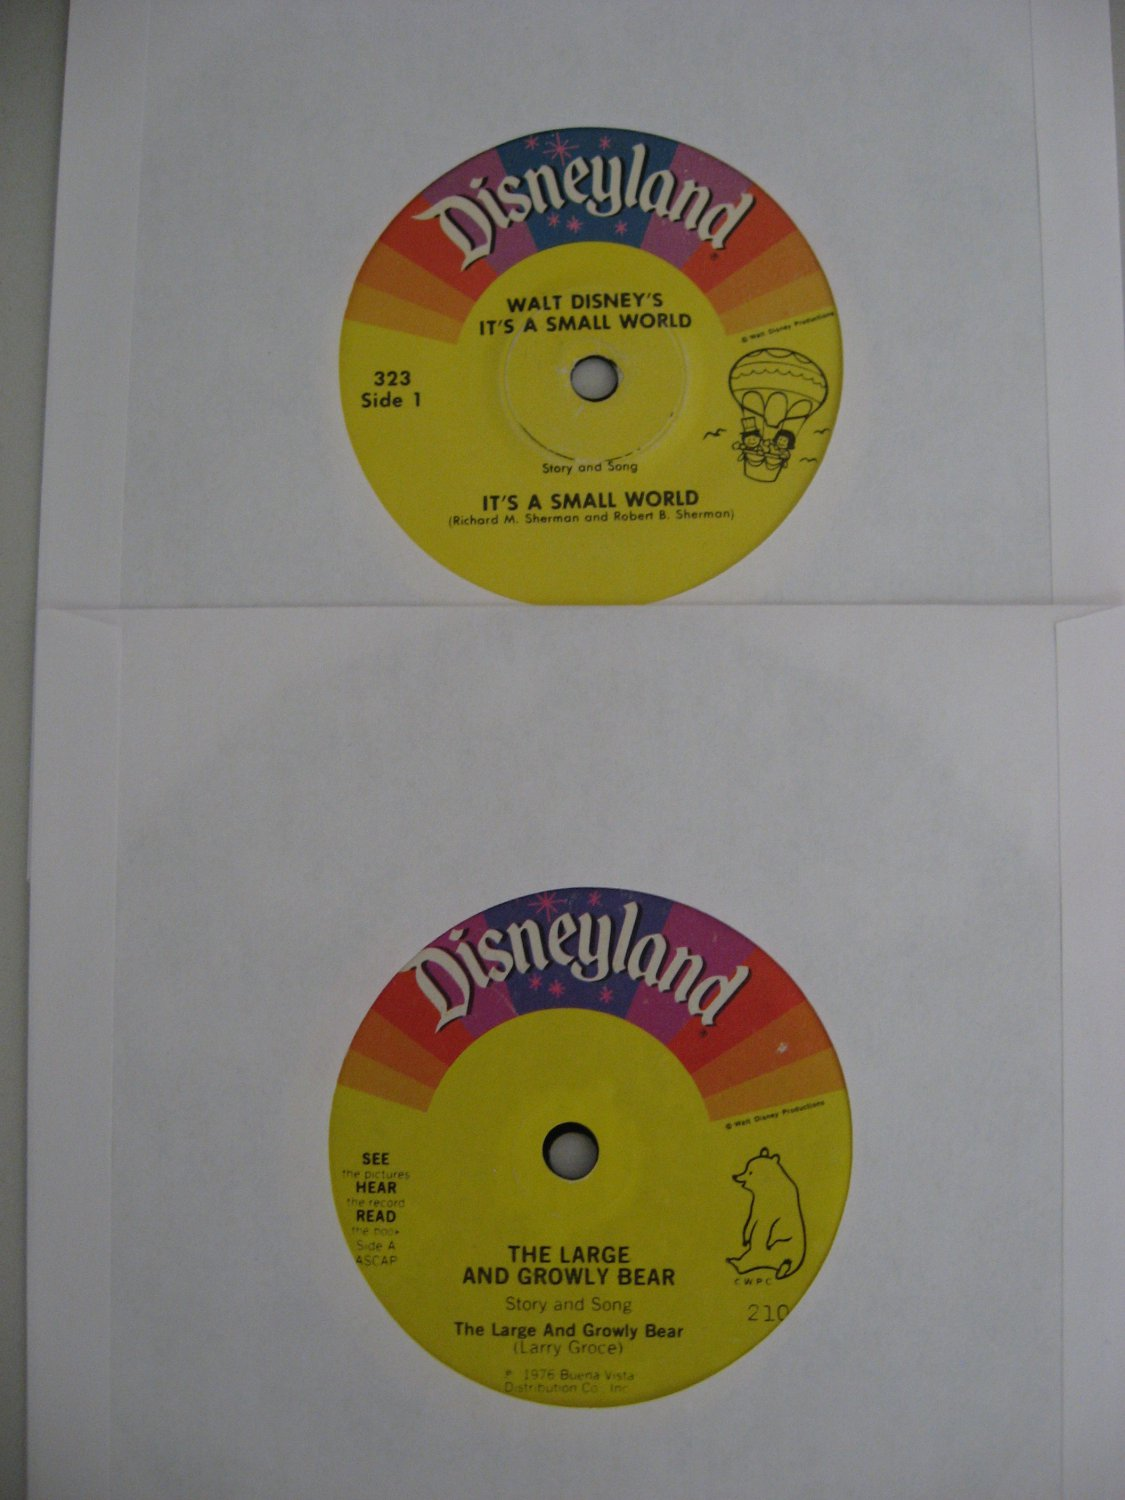 Disneyland Records - It's A Small World (Vinyl Record)